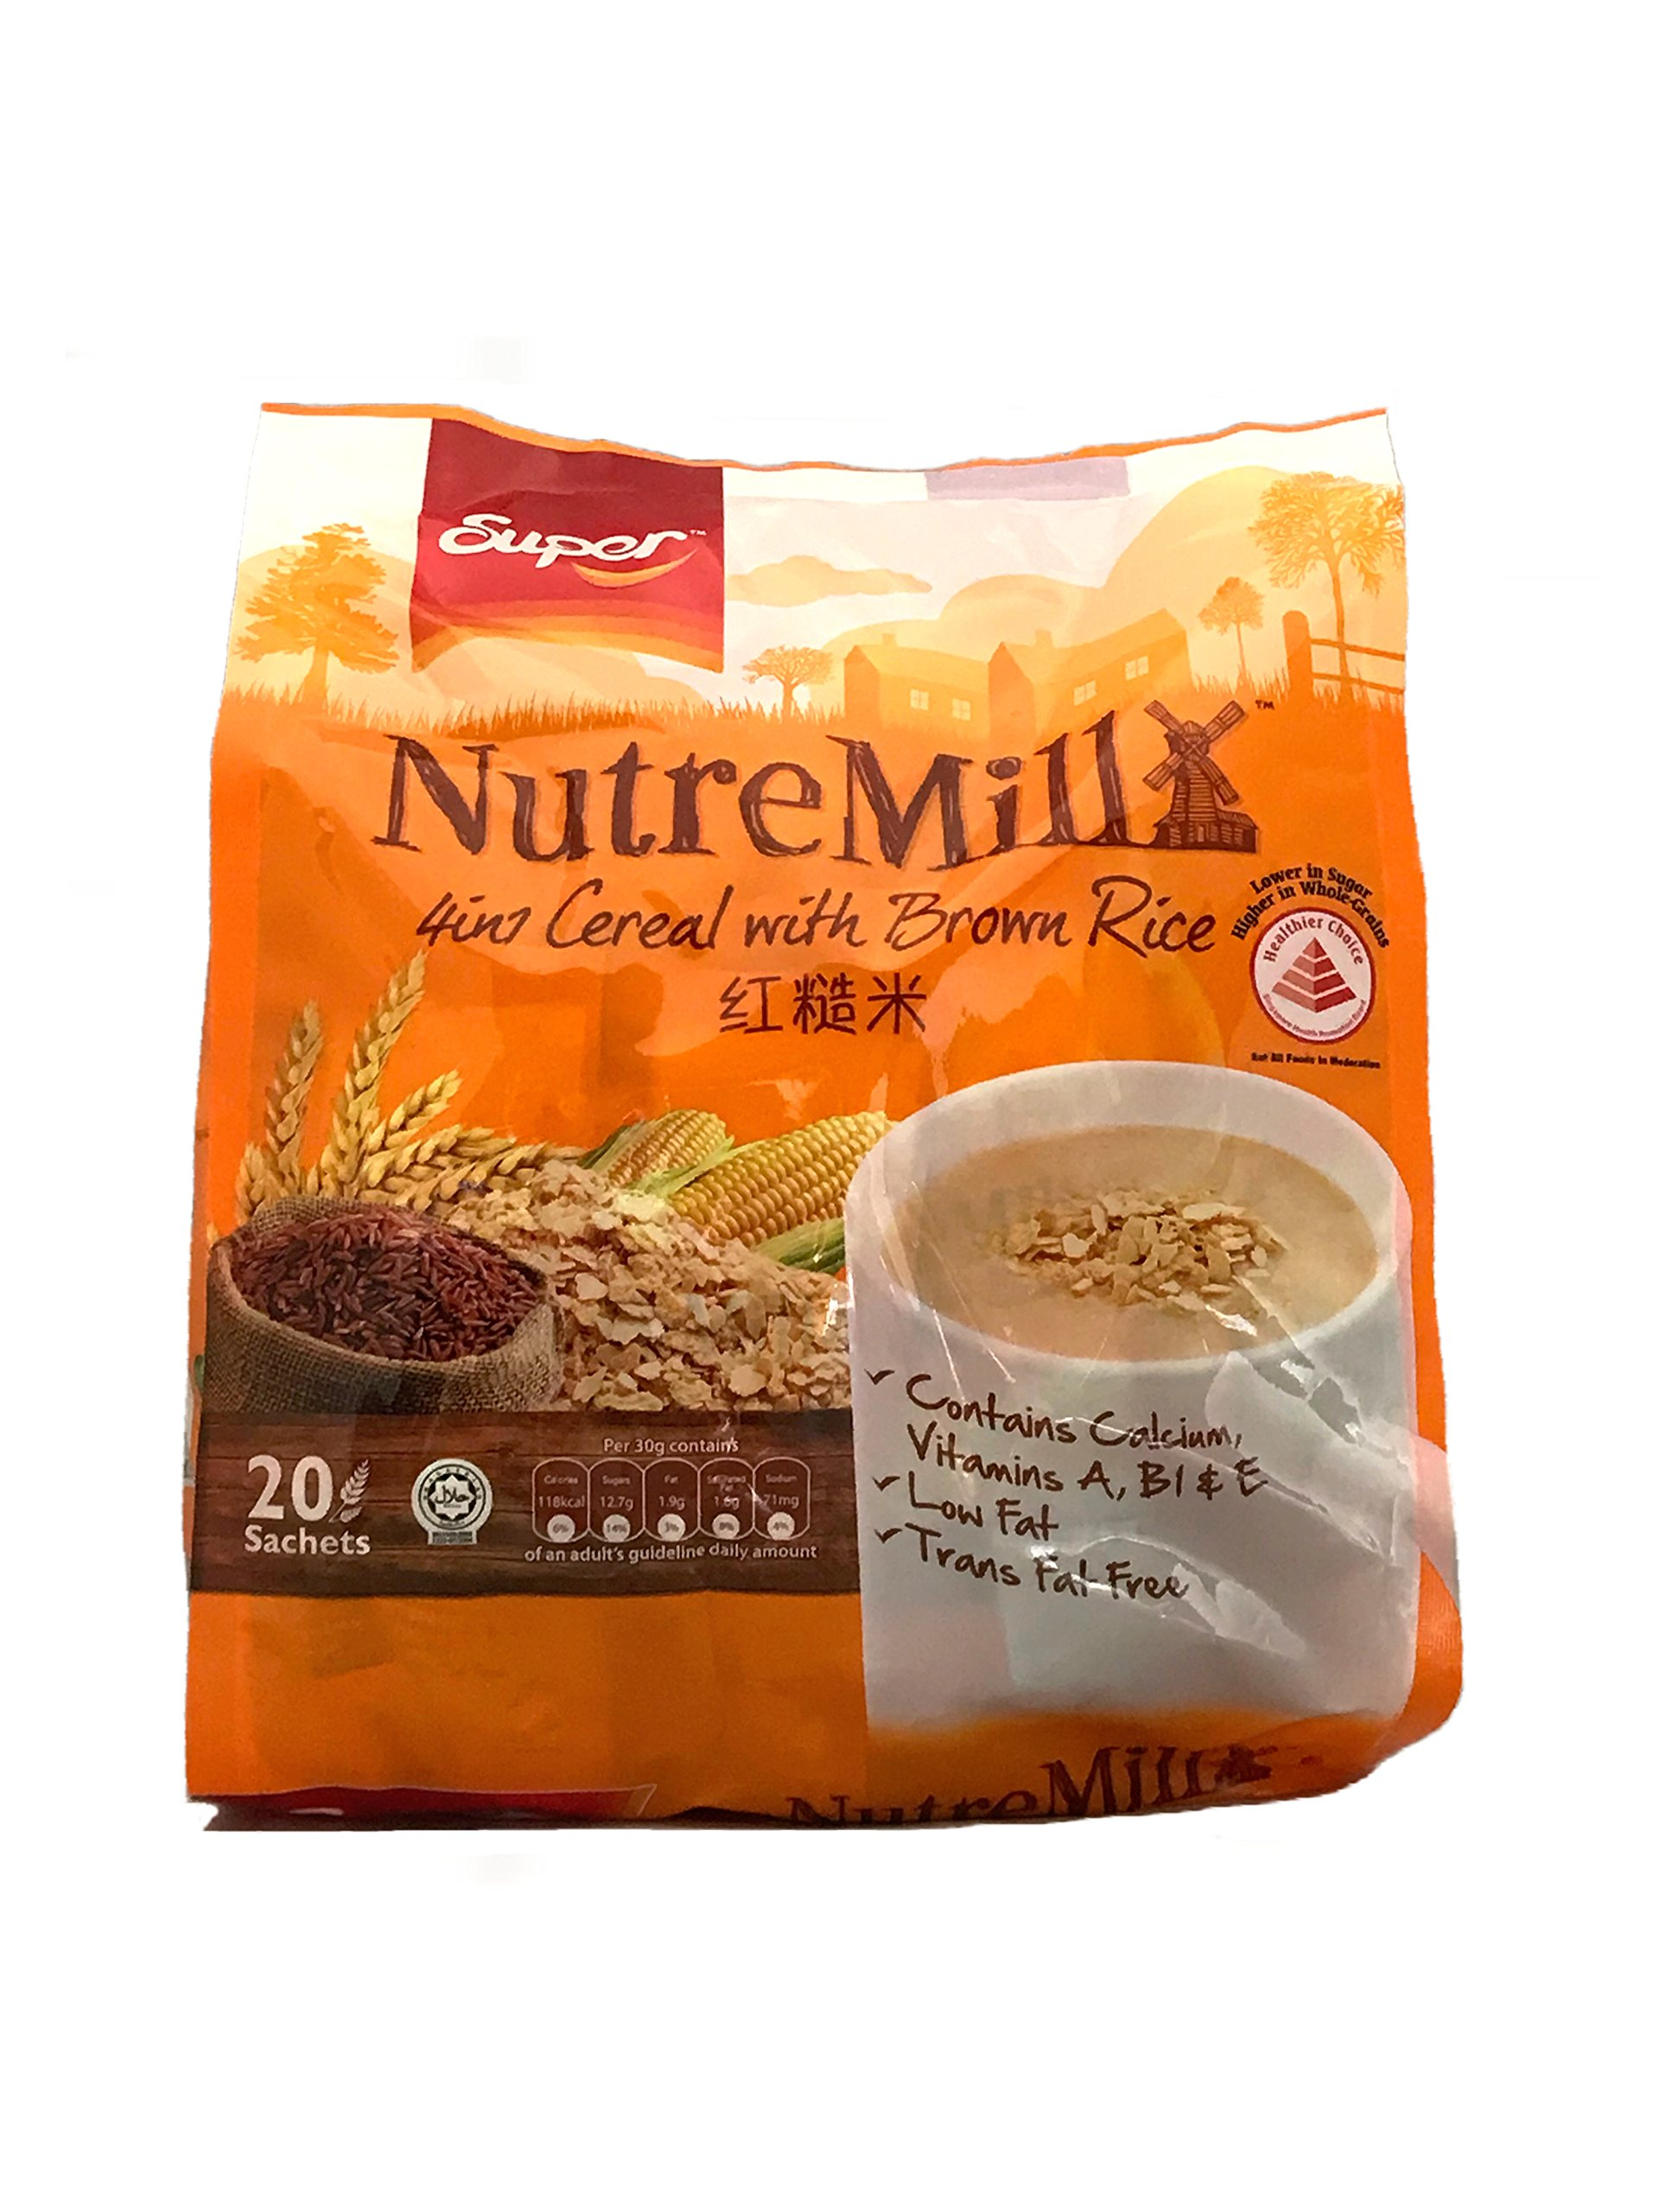 Super NutreMill 4 in 1 Cereal with Brown Rice by Super